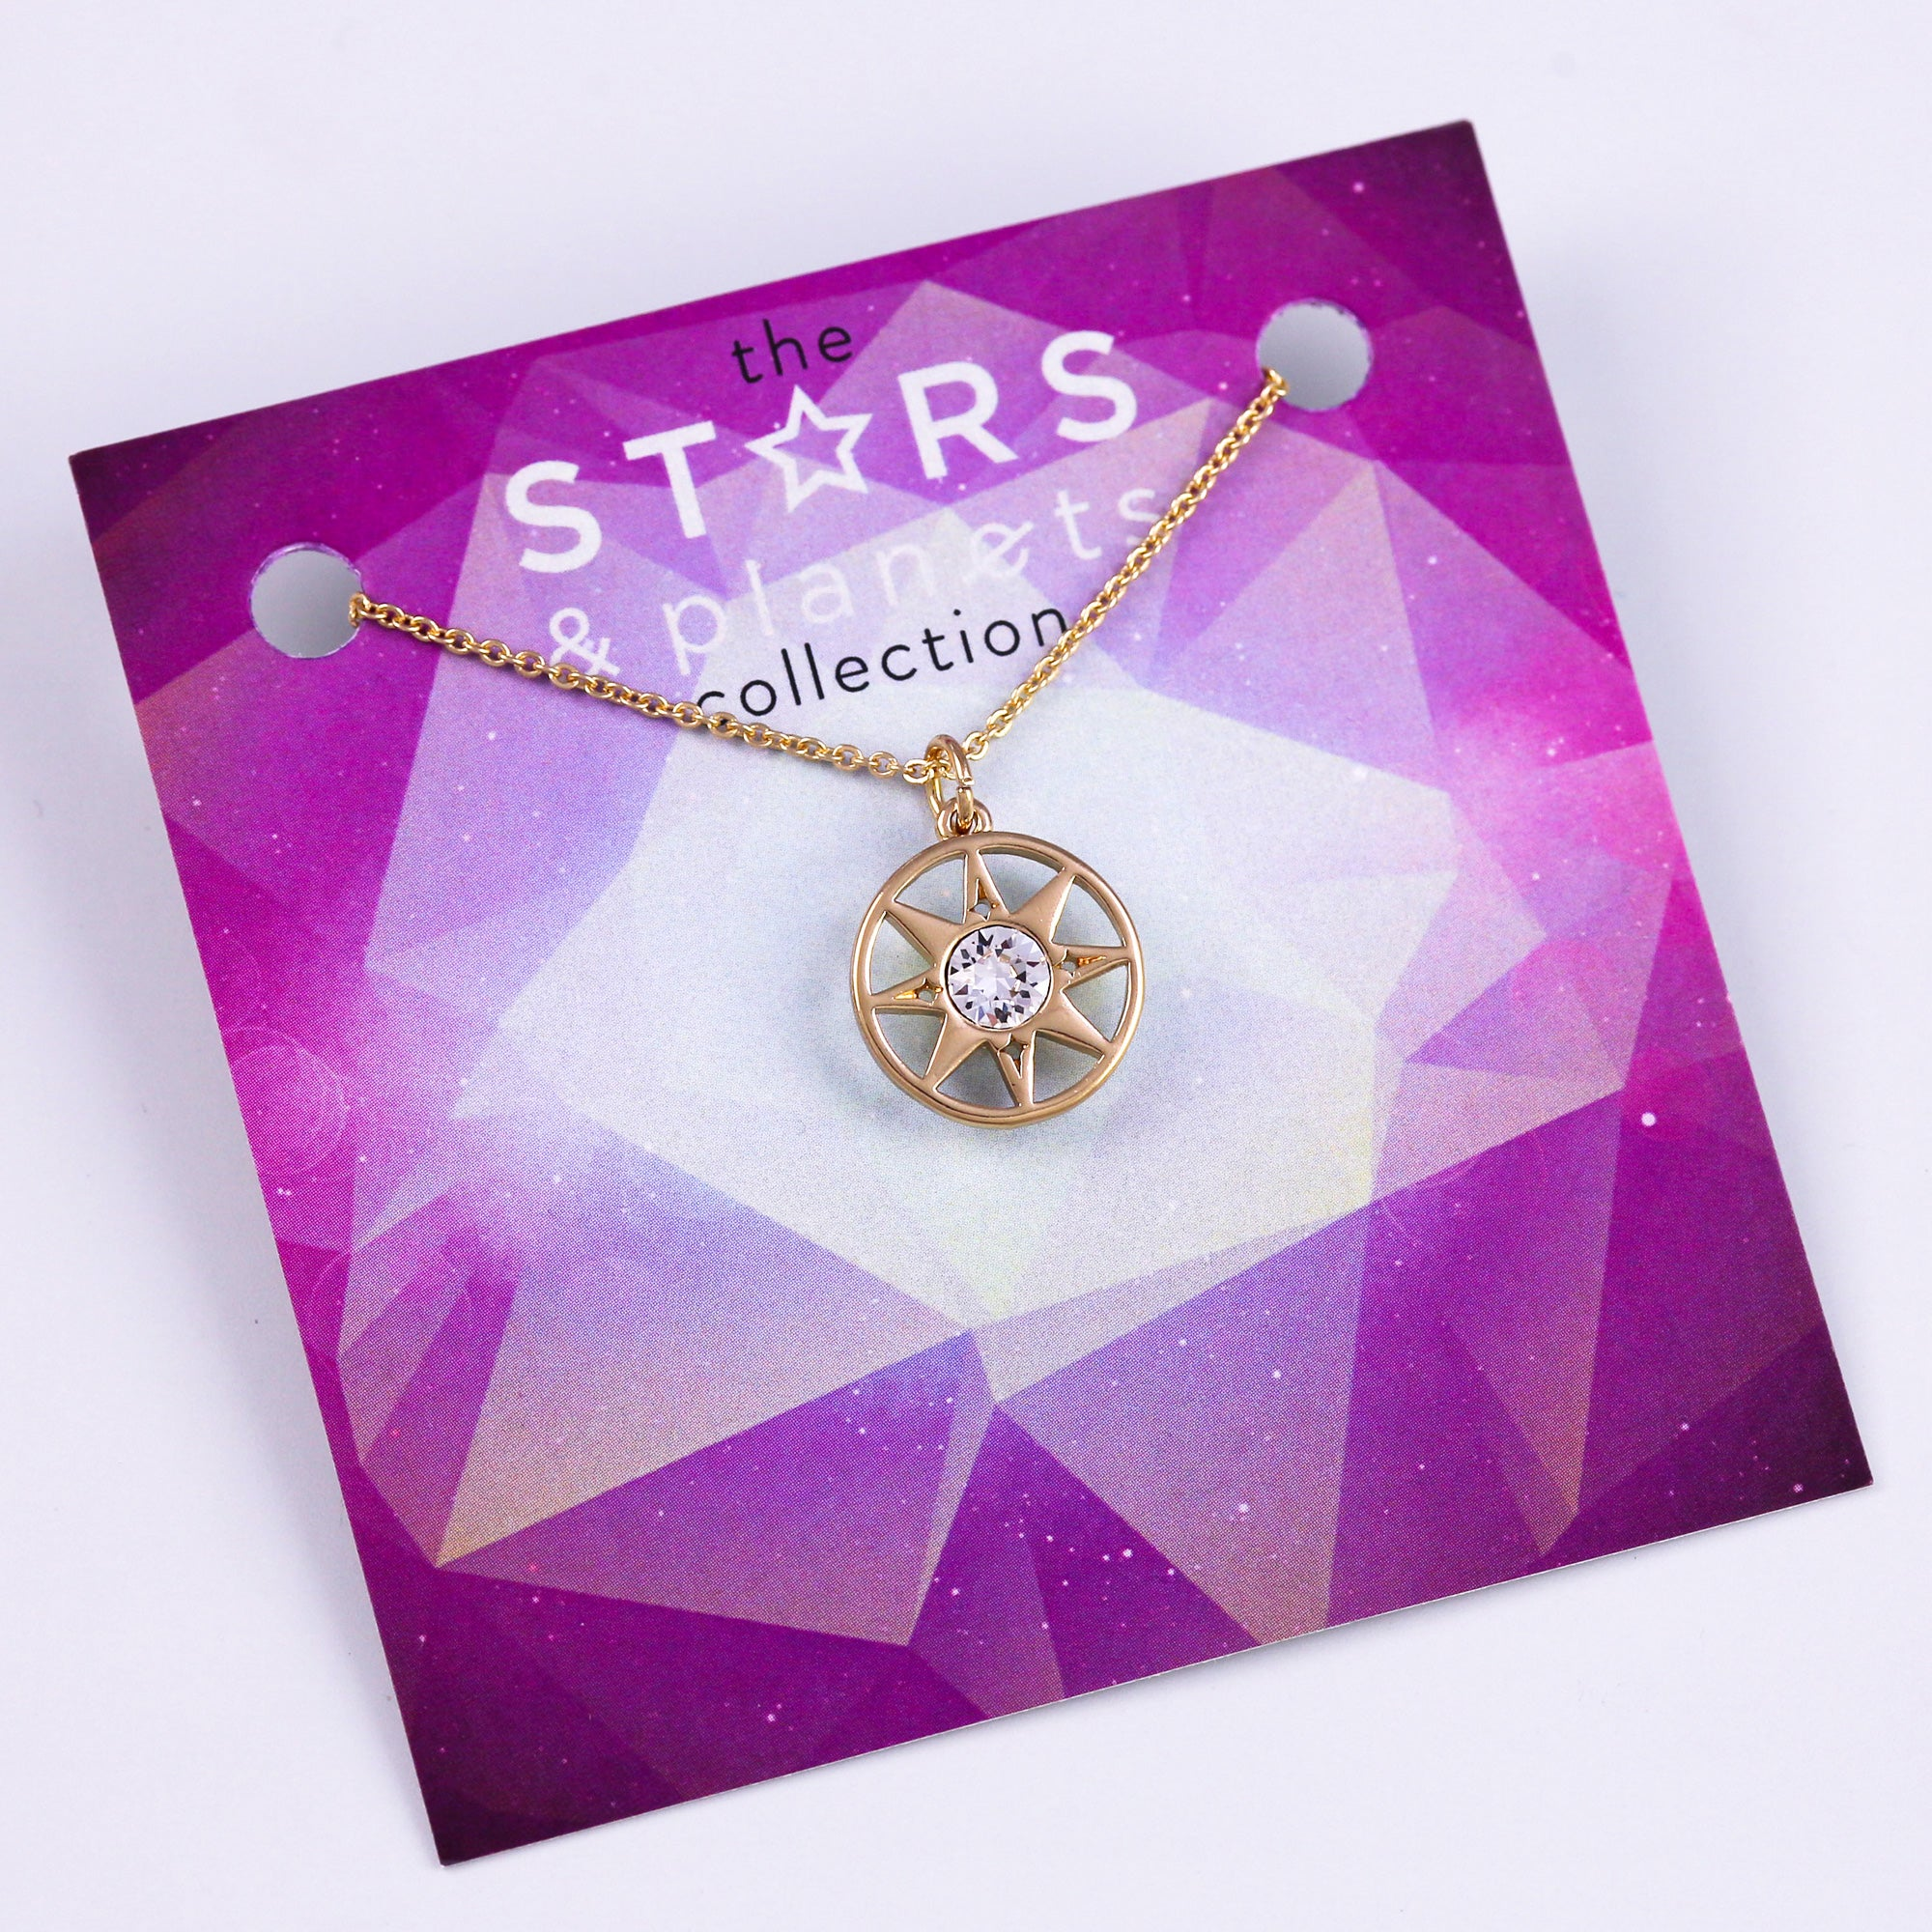 Gold Compass Necklace Stars & Planets Collection